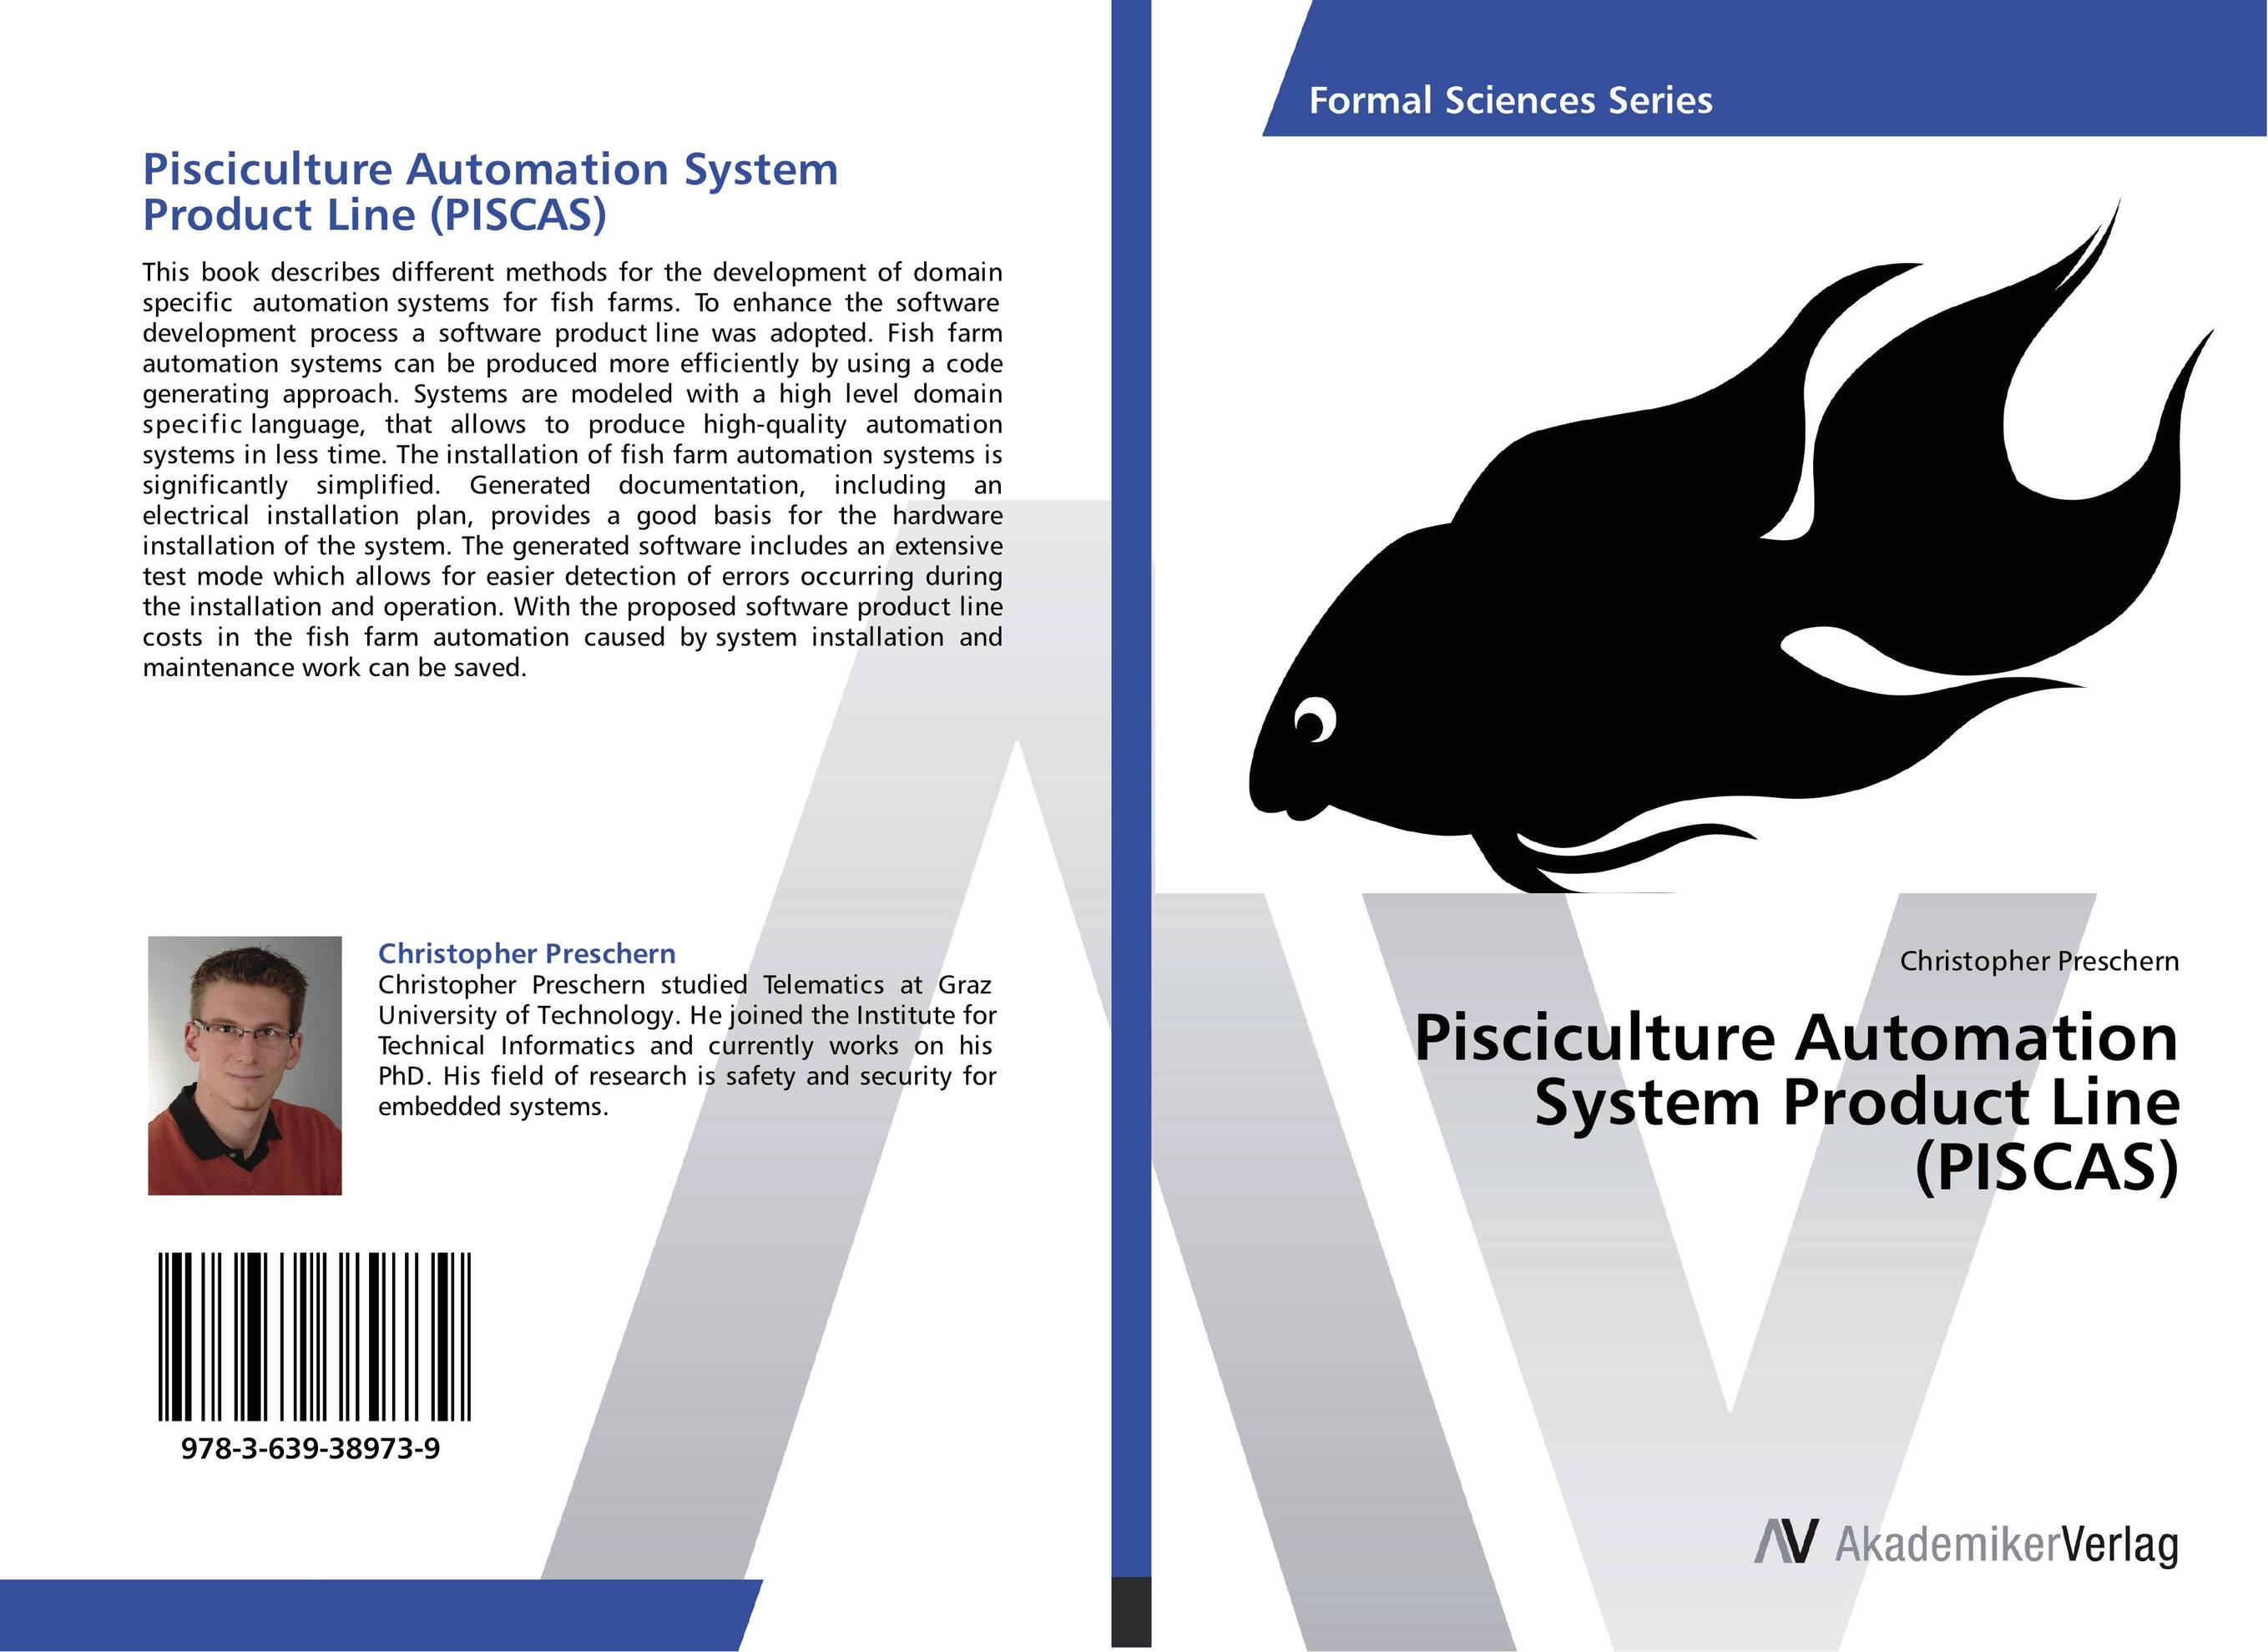 Pisciculture Automation System Product Line (PISCAS) urban infrastructure for solid waste management